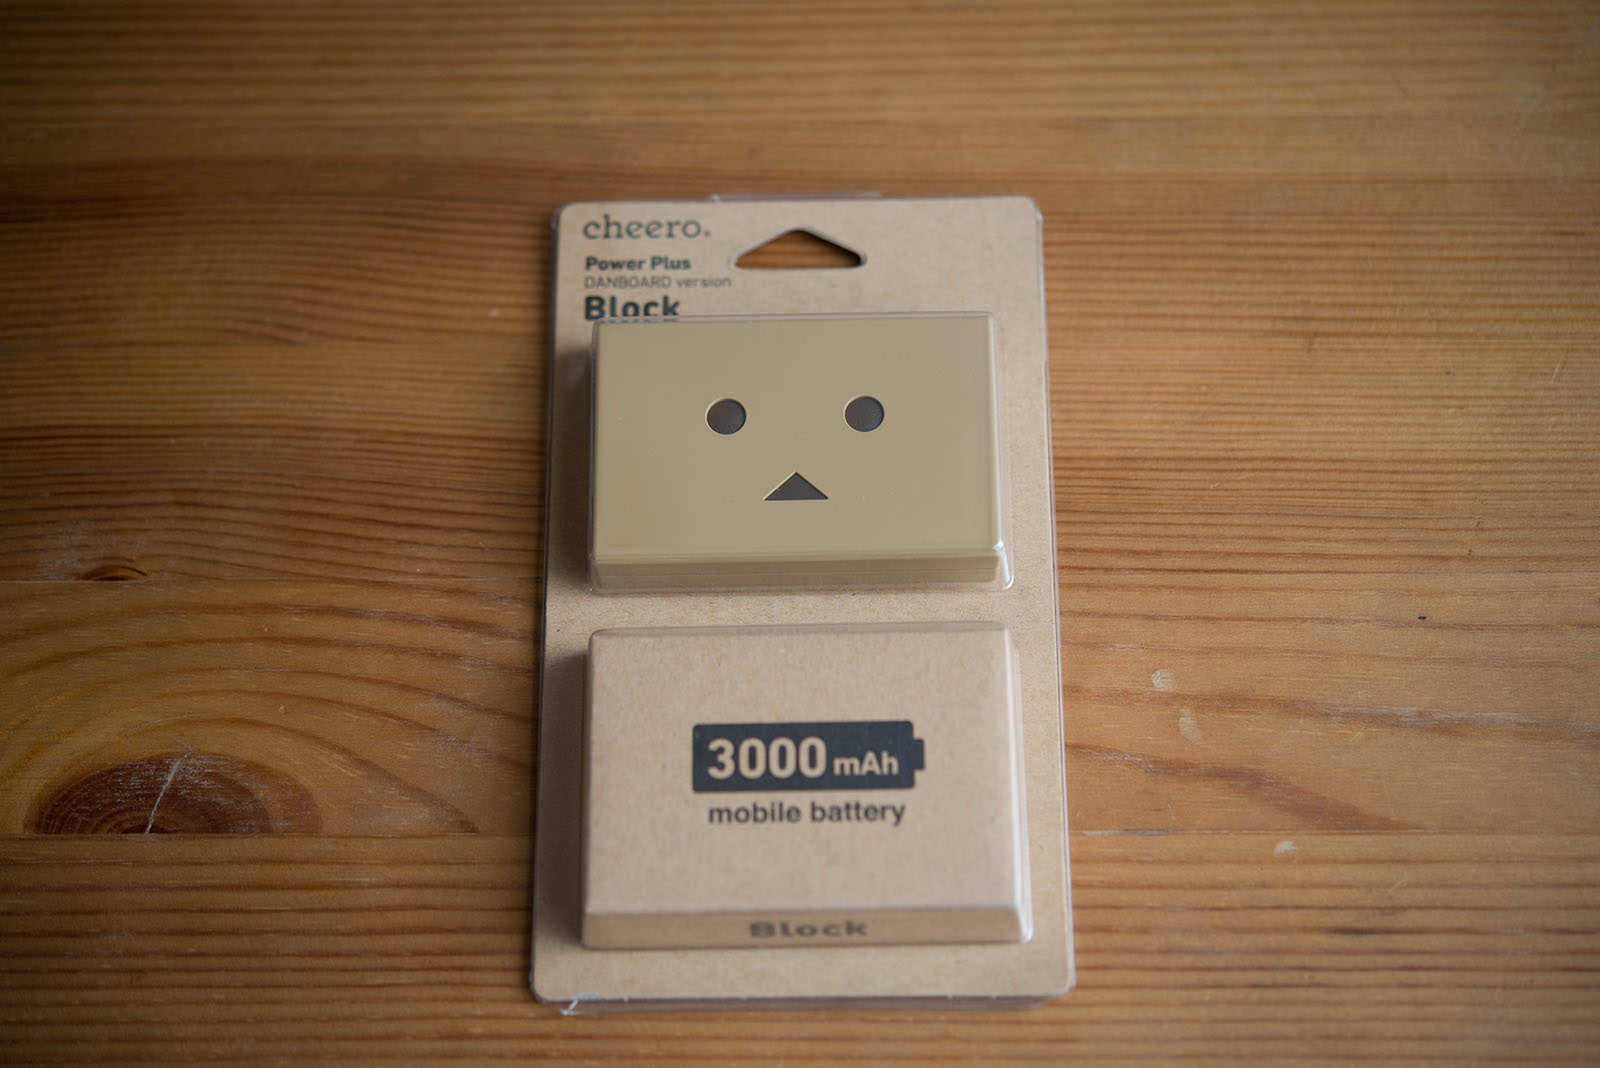 cheero Power Plus DANBOARD version block review_01